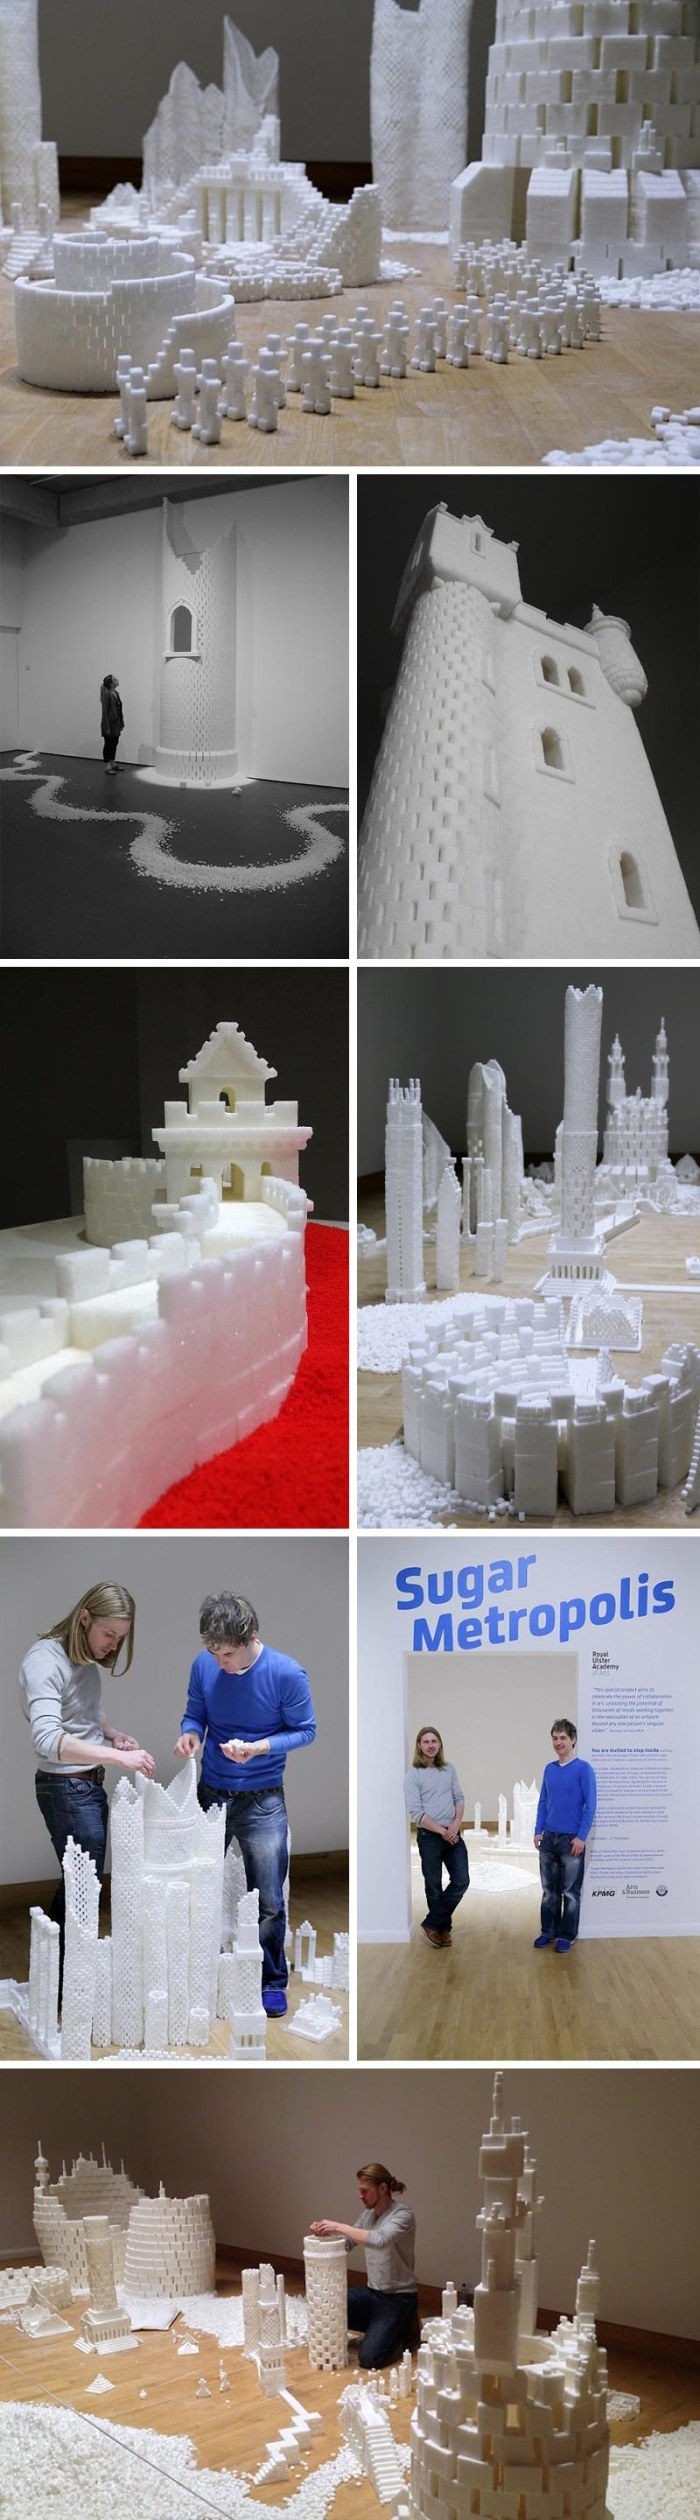 Sugar Metropolis project for kids in Harlem, Summer 2014, Brendan Jamison and Mark Revels, community art, sugar cube art